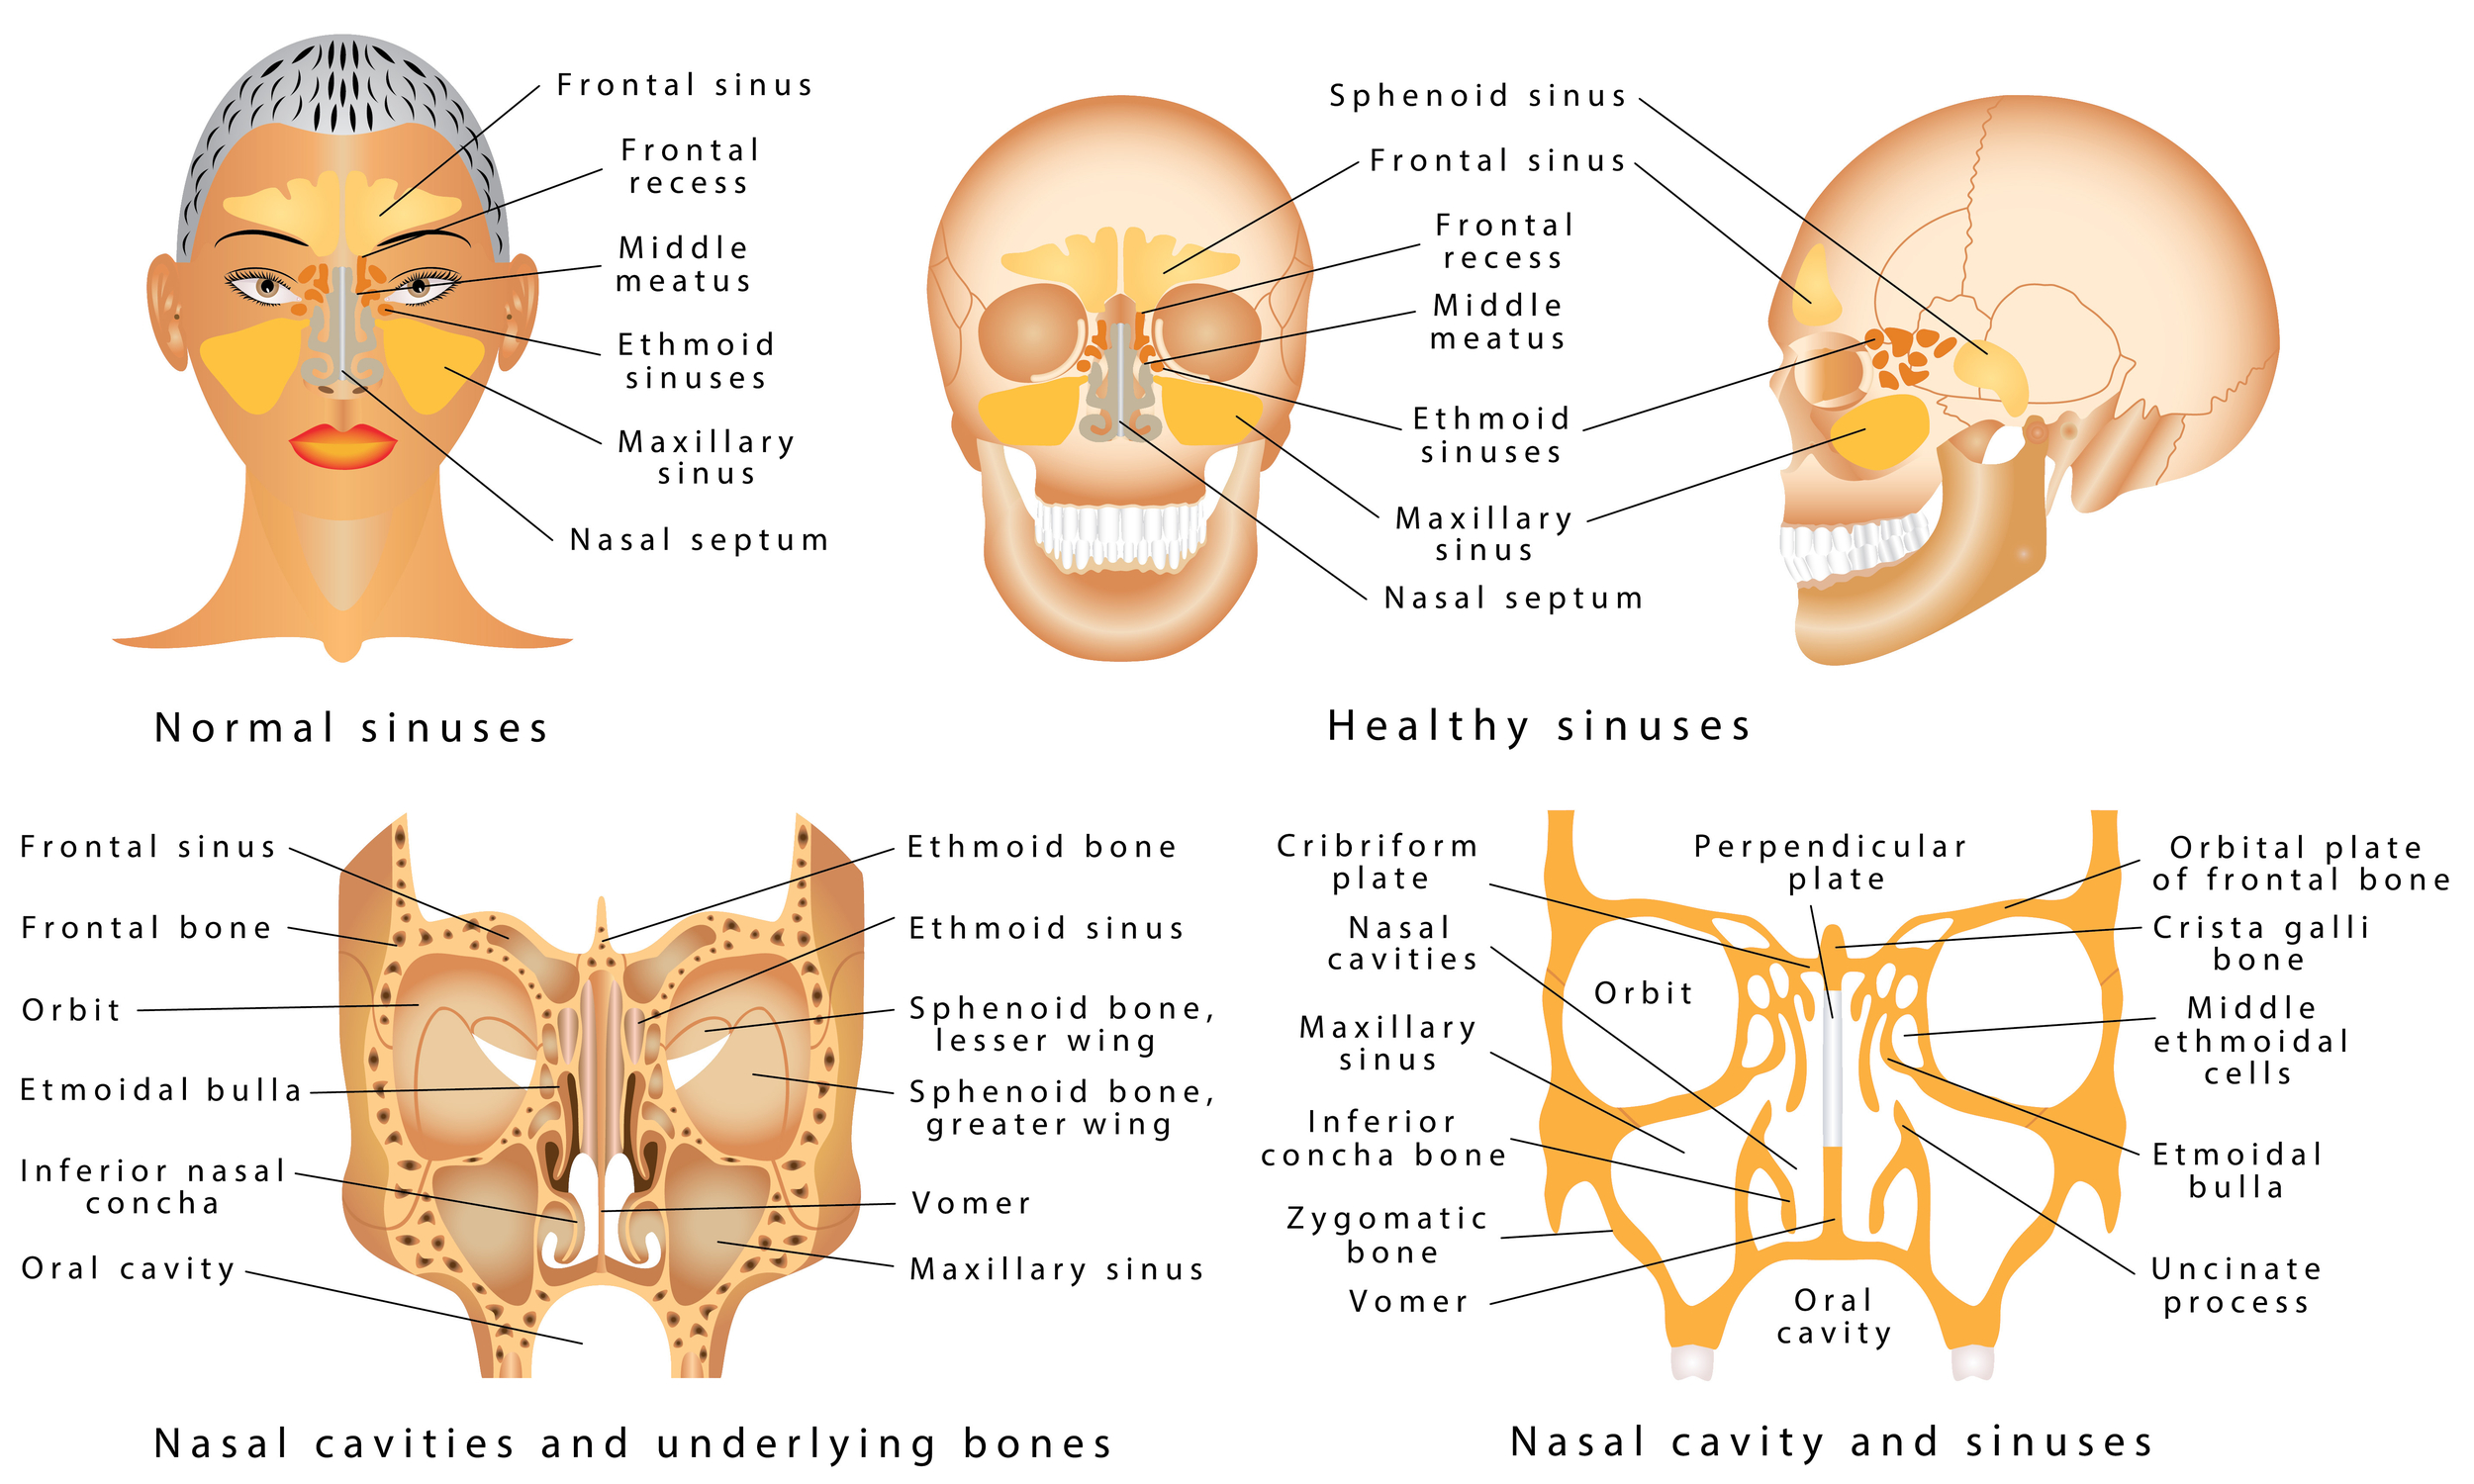 nose nasal sinus anatomy images for presentations